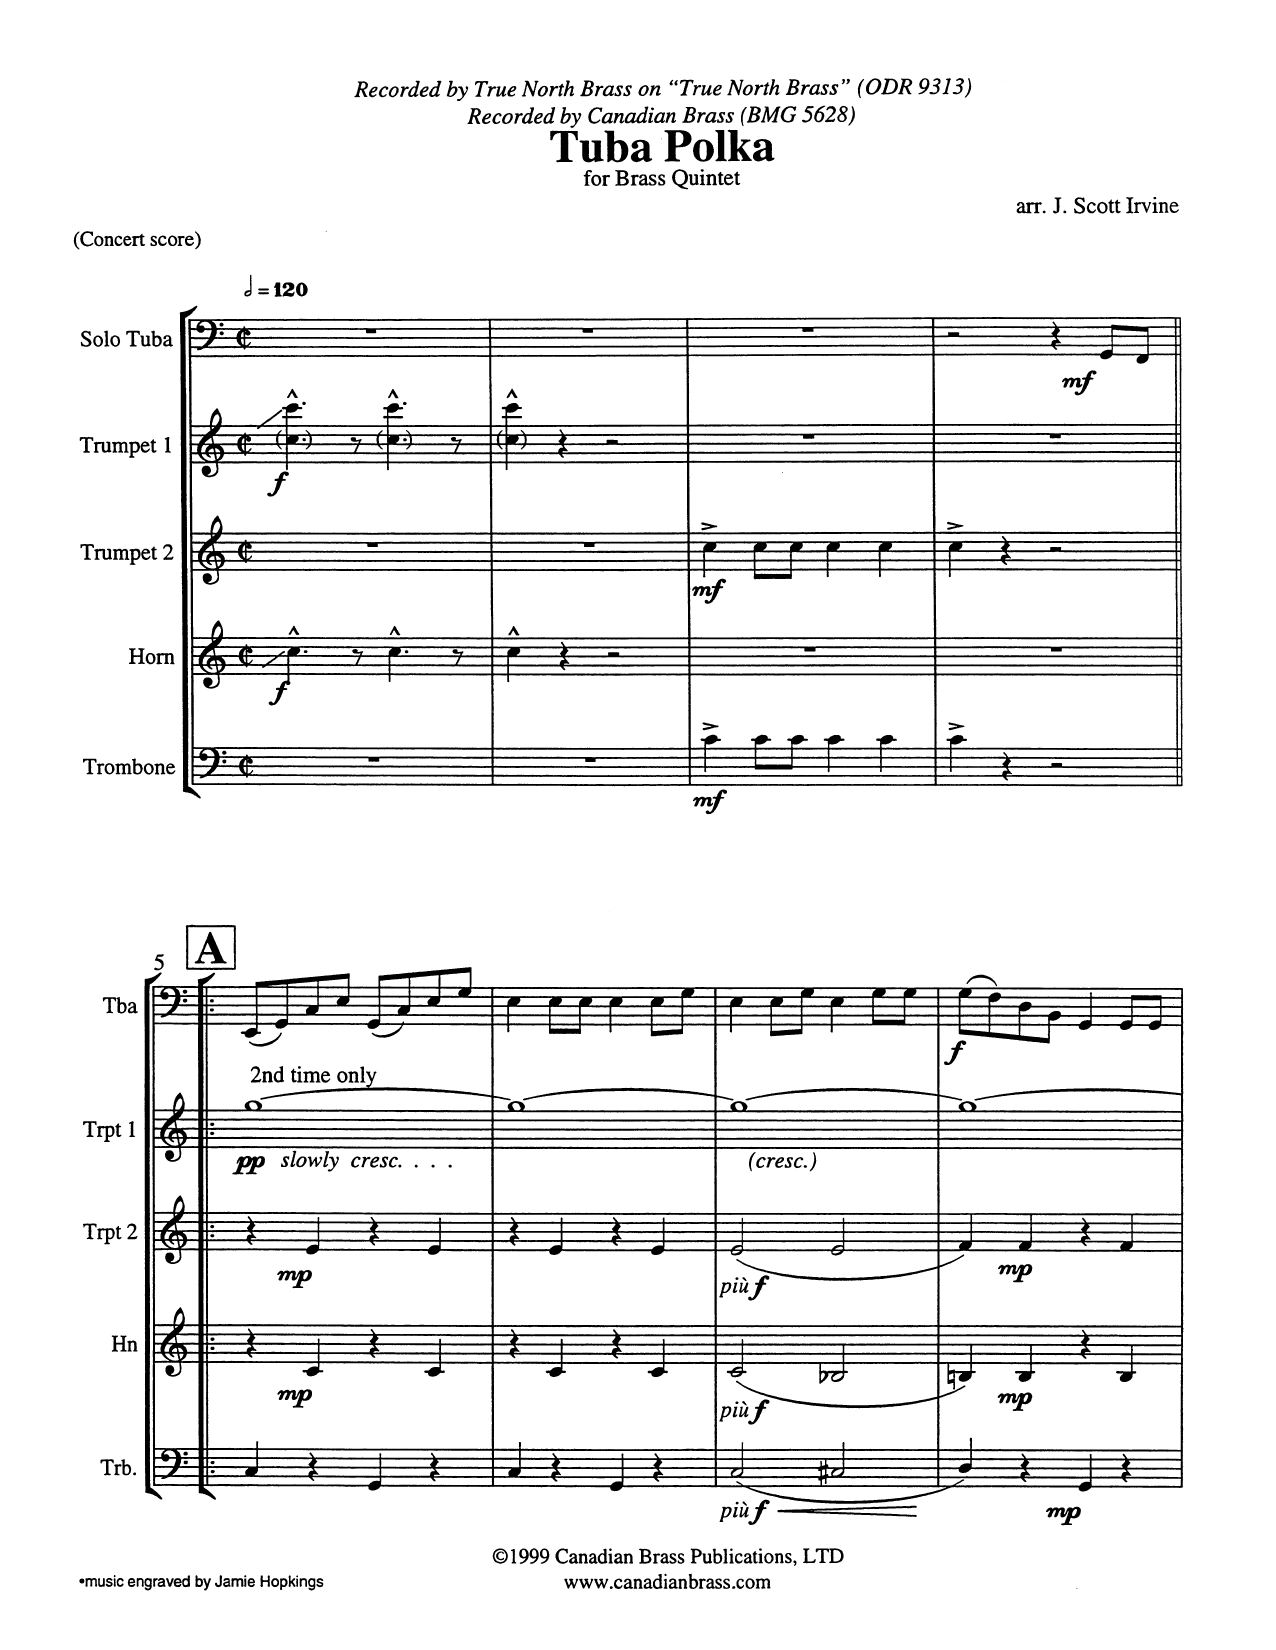 Tuba Polka (COMPLETE) sheet music for brass quintet by J. Scott Irvine. Score Image Preview.